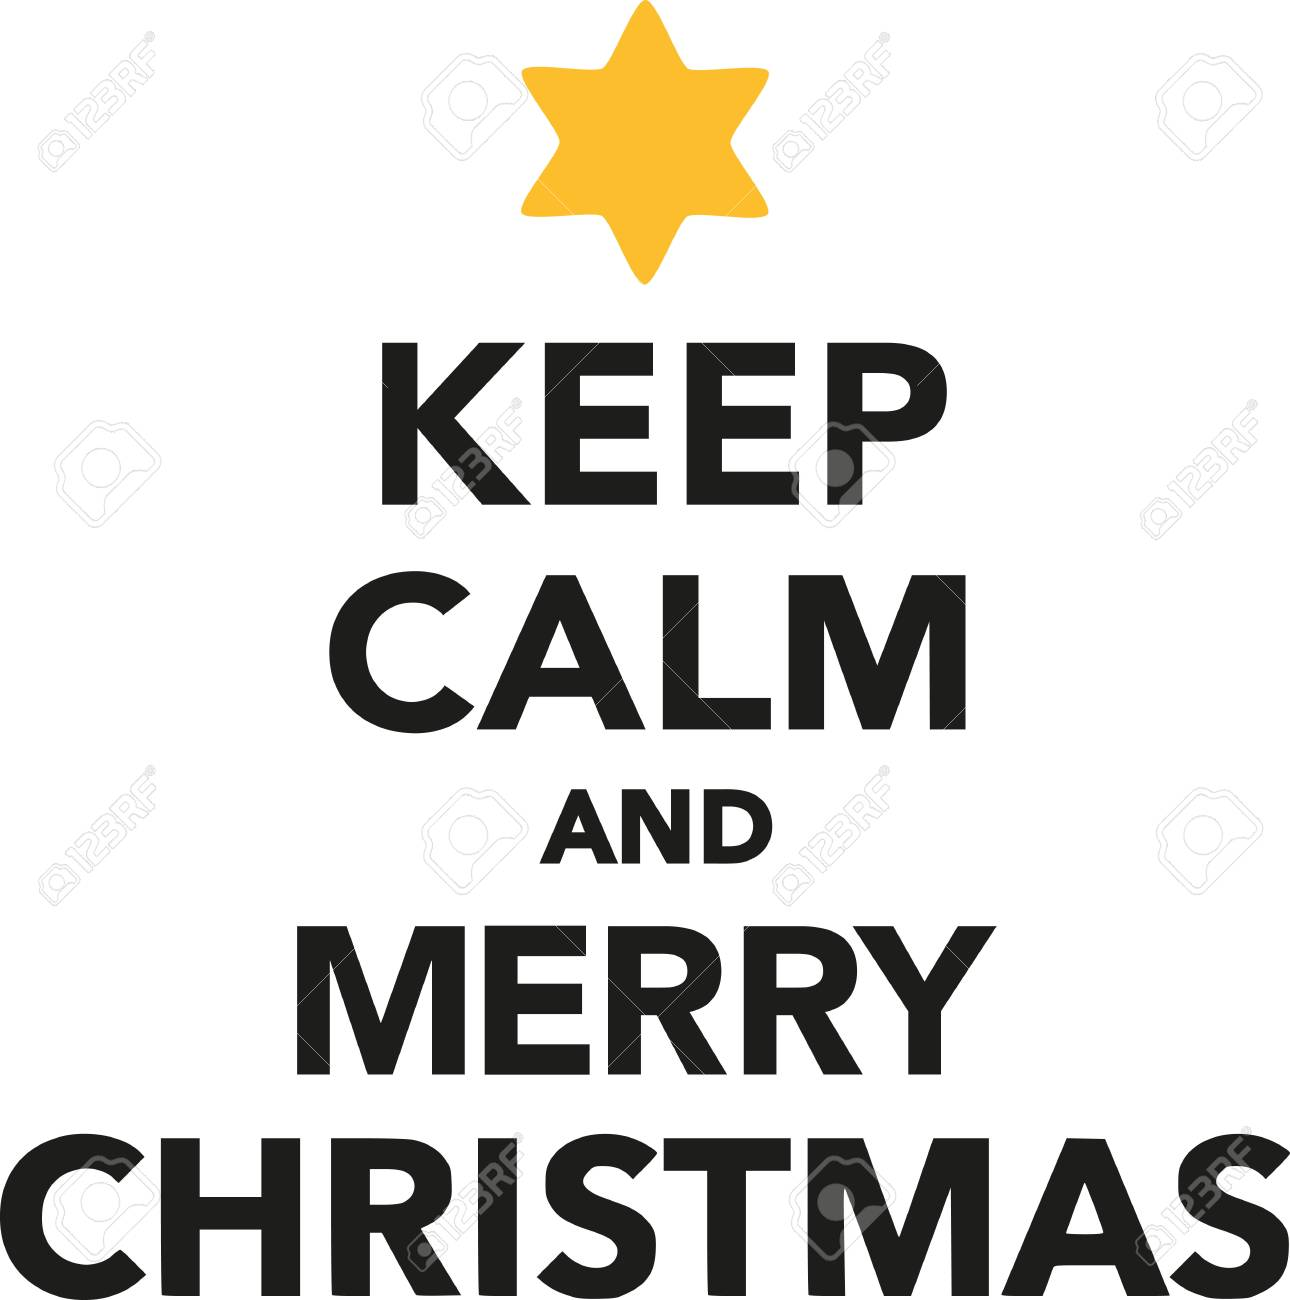 Keep Calm And Merry Christmas Royalty Free Cliparts, Vectors, And ...